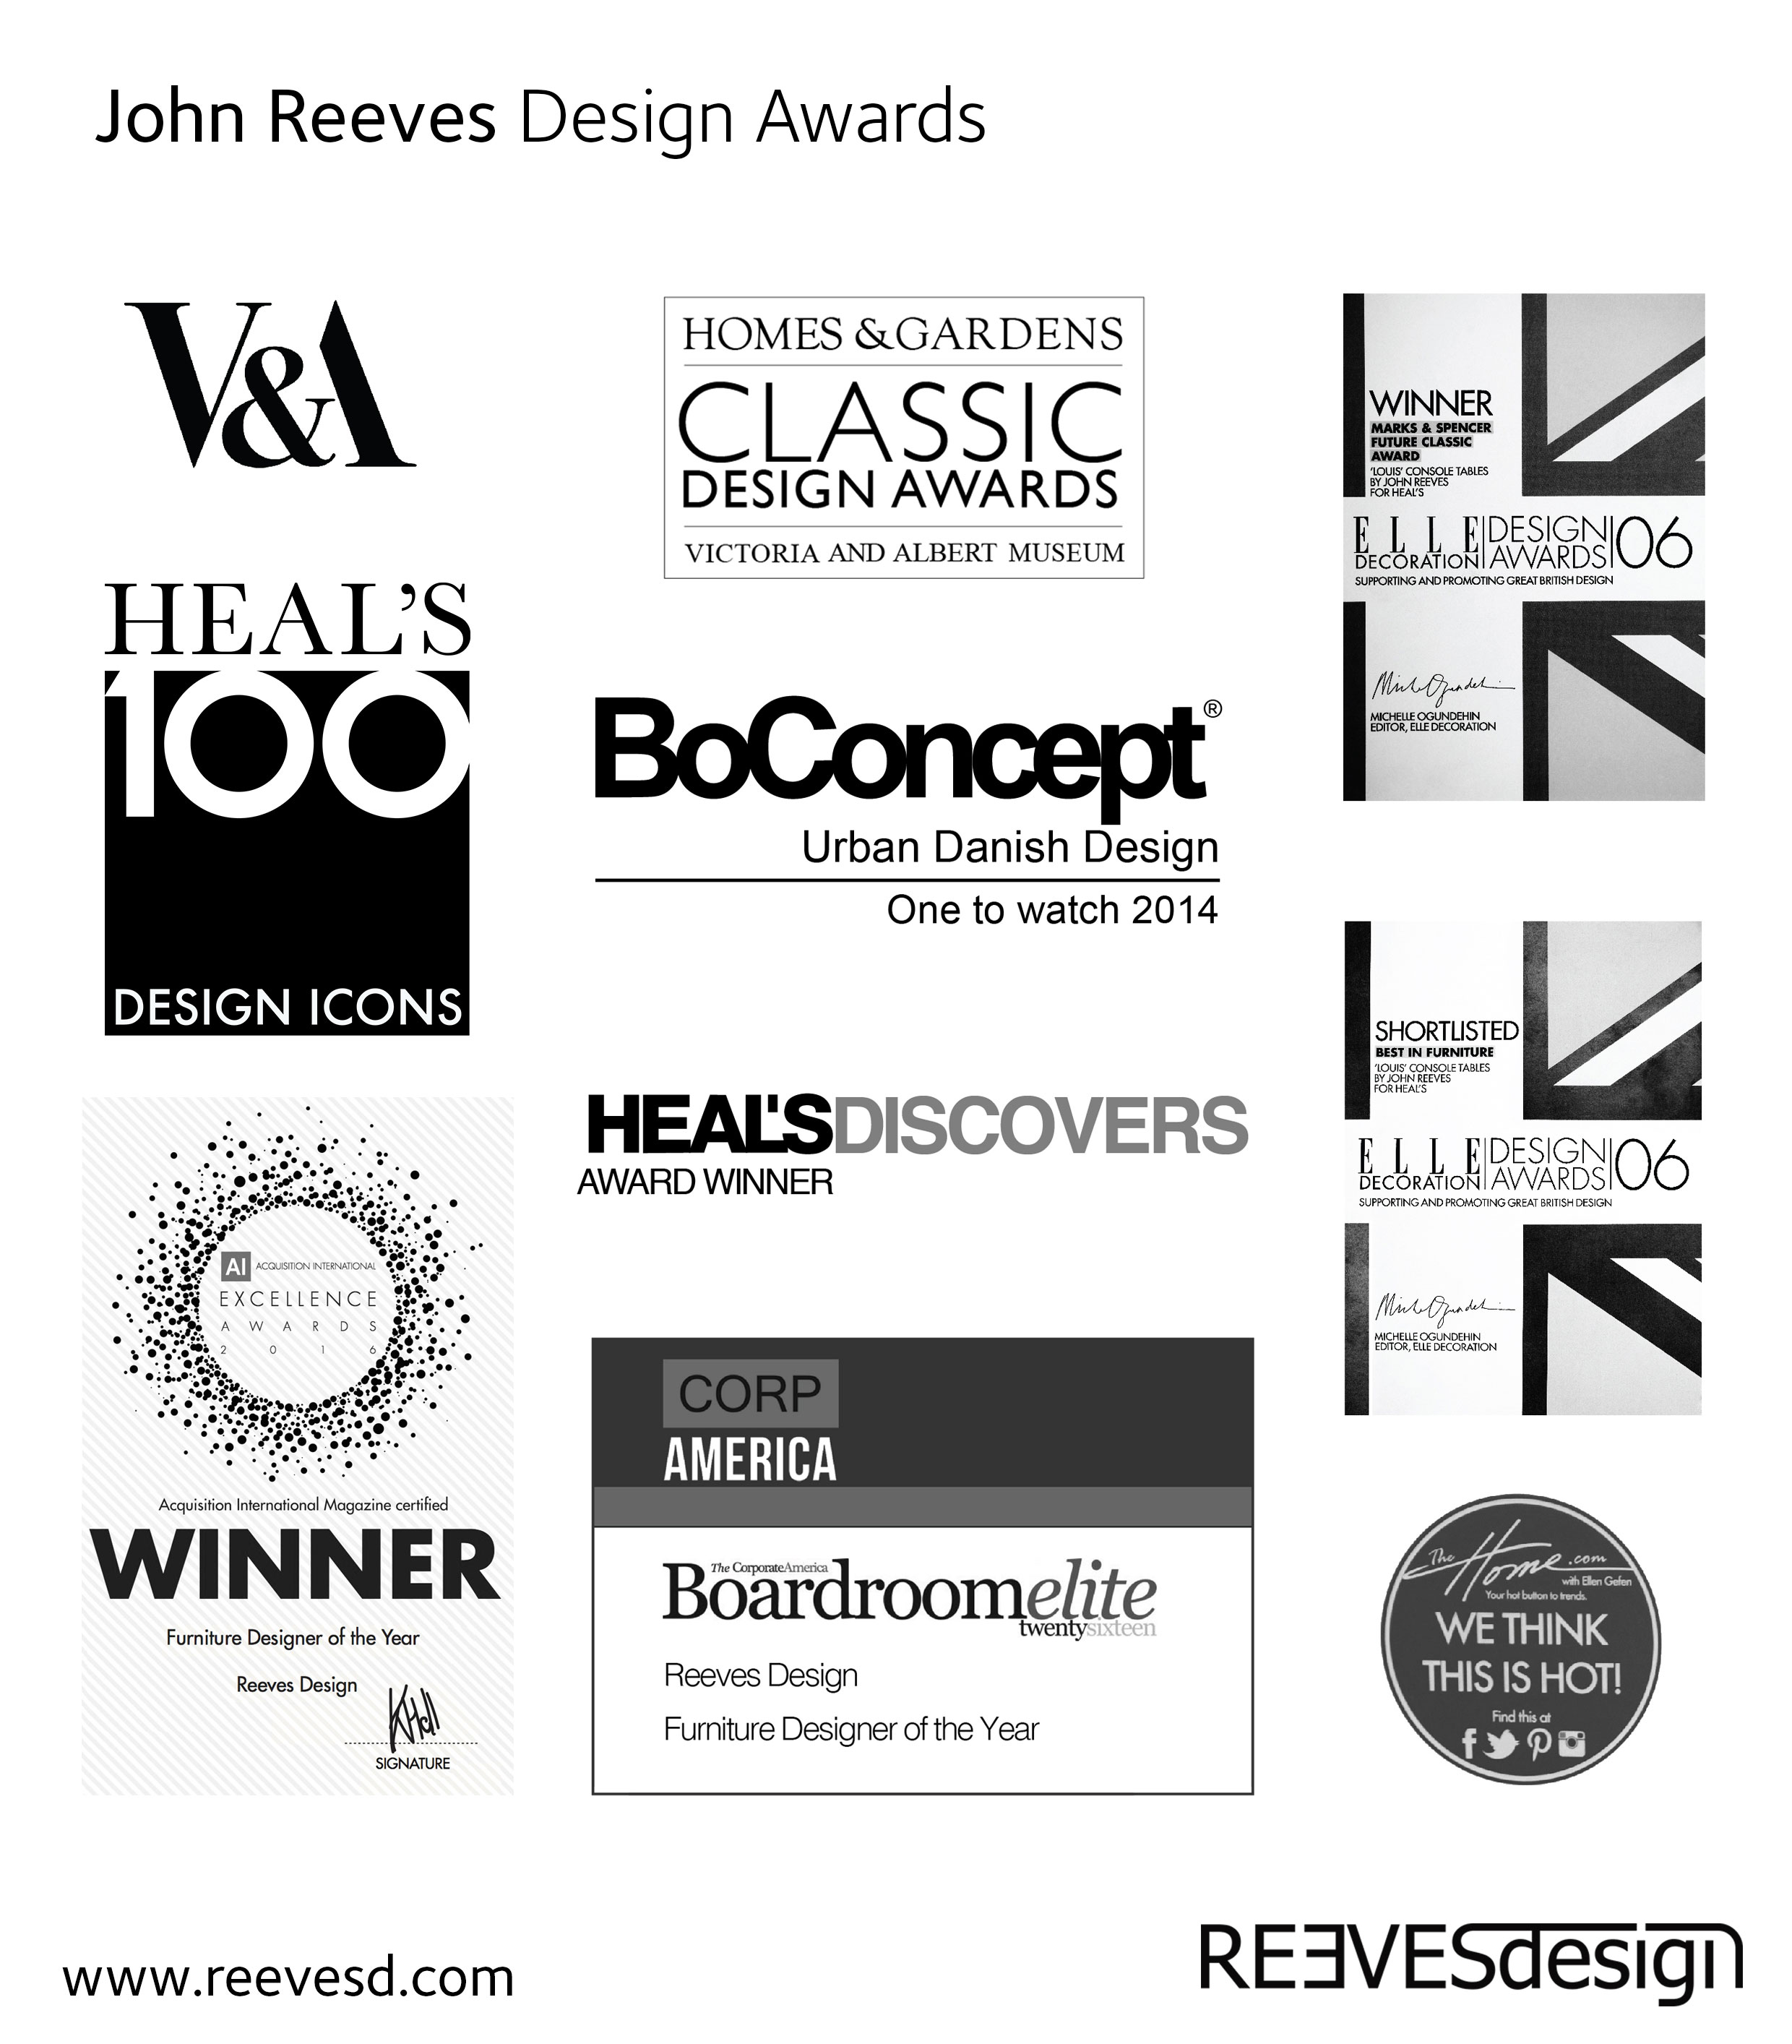 Design Awards, thank you.